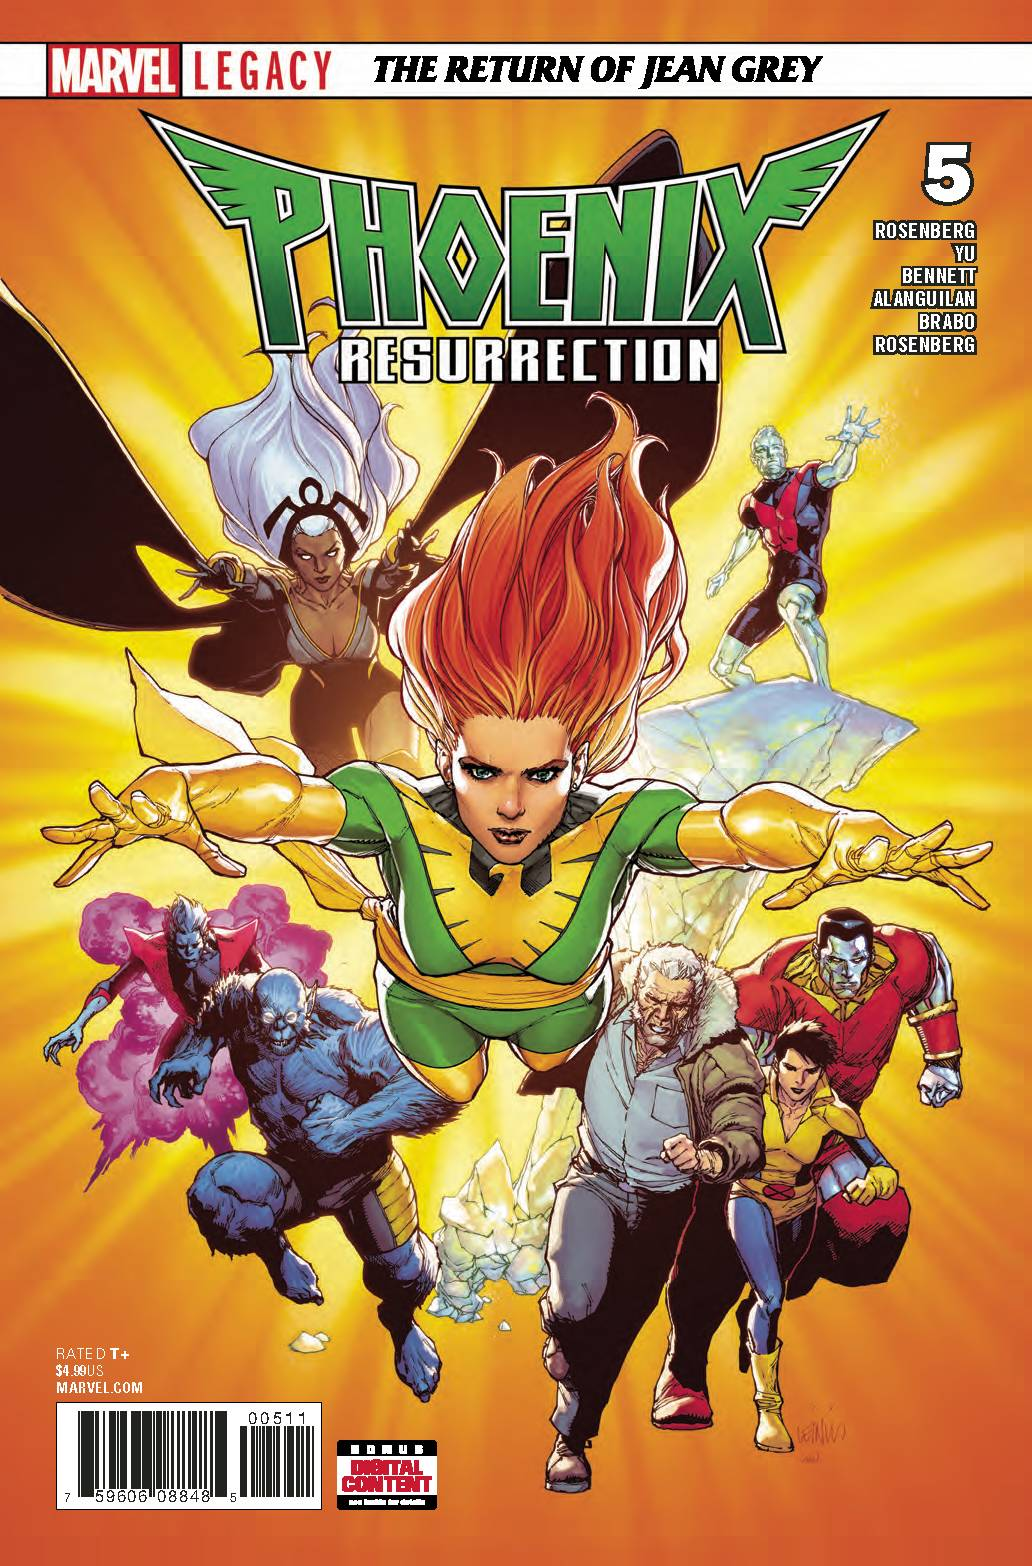 PHOENIX RESURRECTION RETURN JEAN GREY #5 (OF 5) LEG 01/31/18 RD